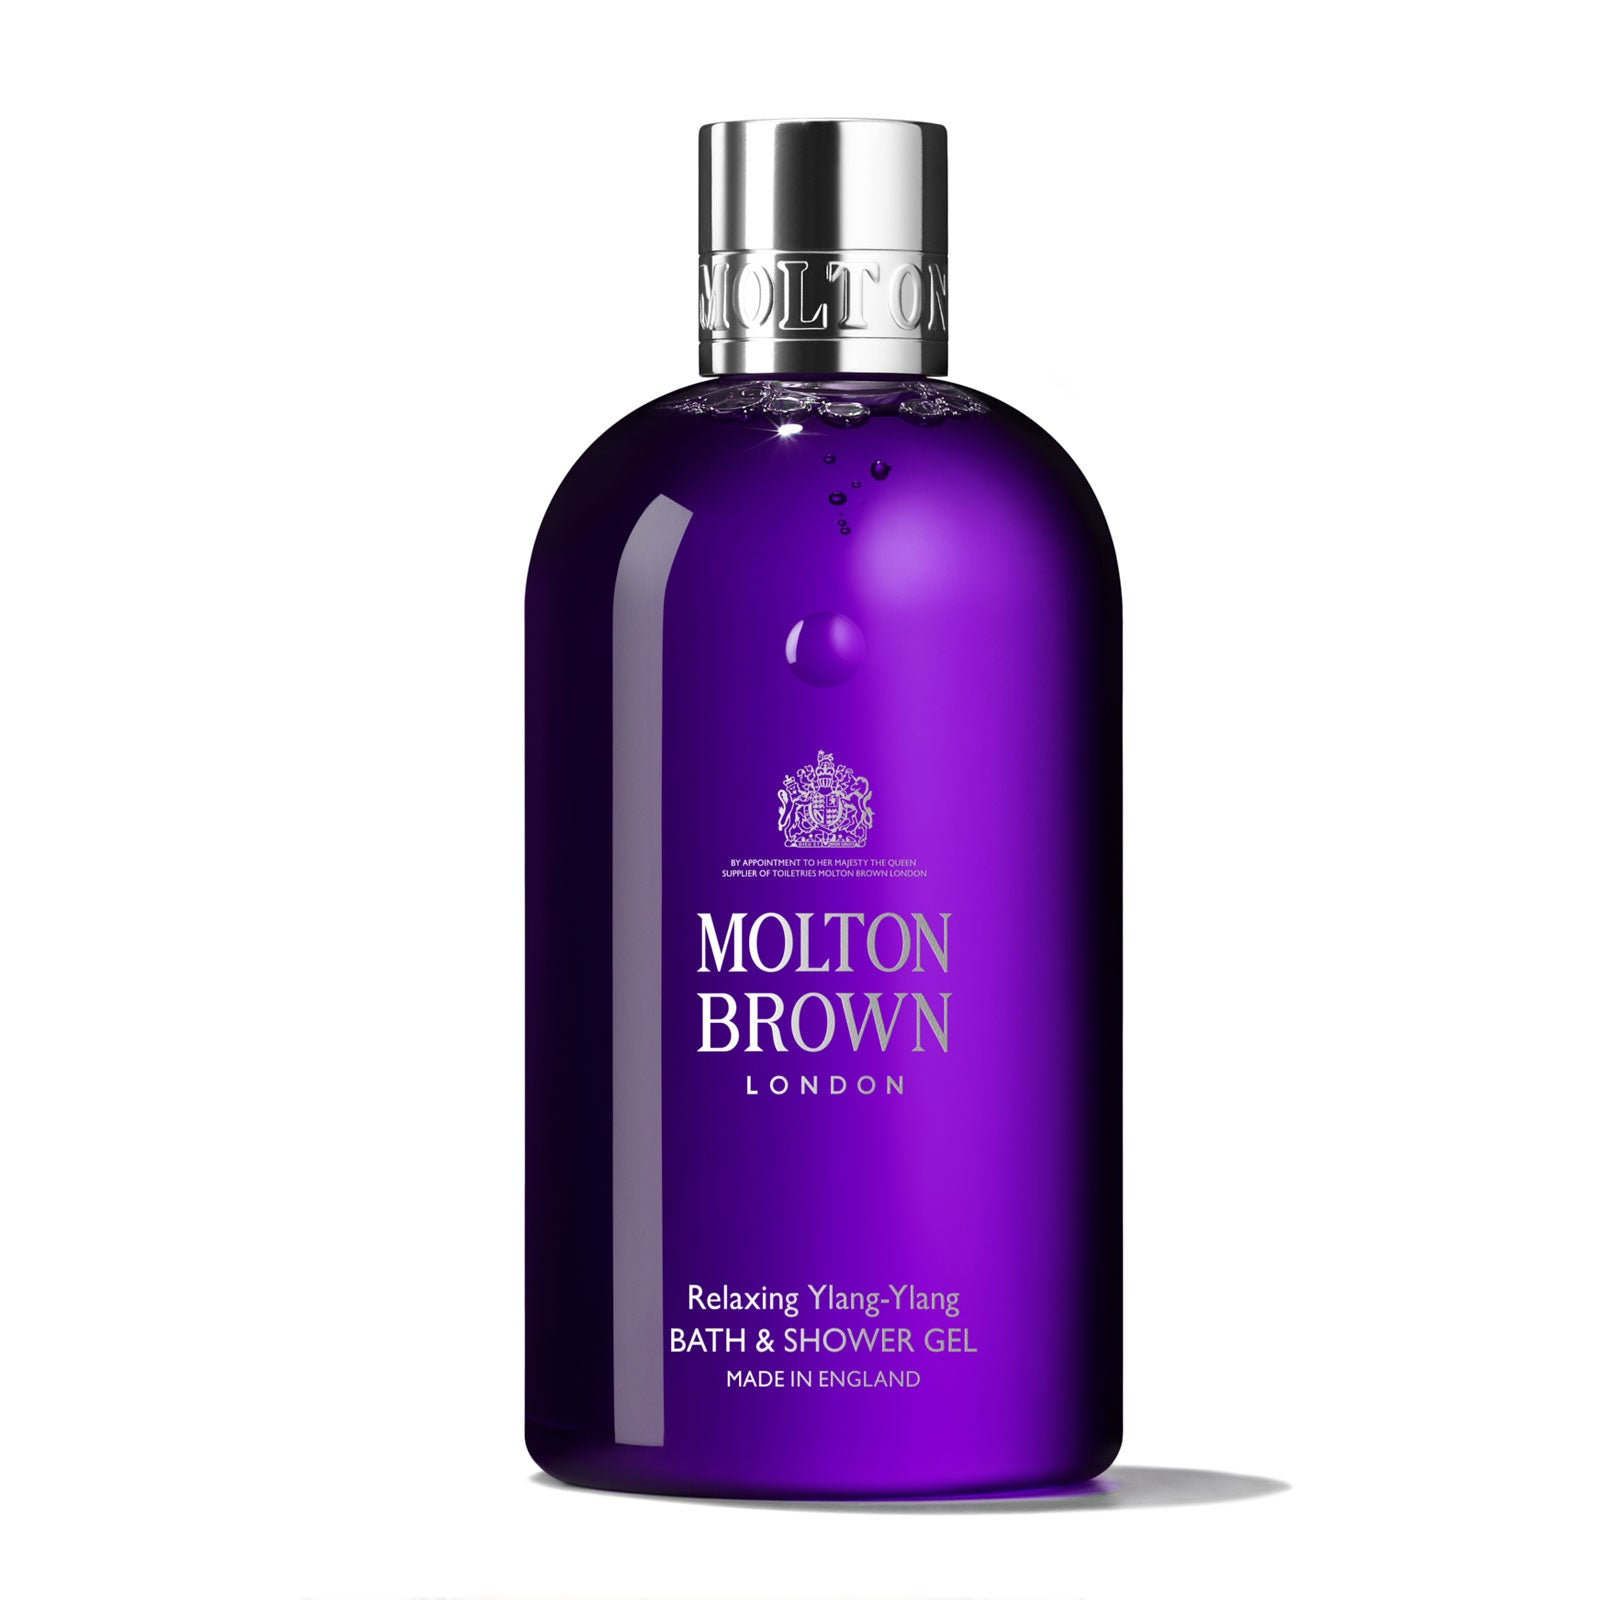 Molton Brown Relaxing Ylang-Ylang Bath & Shower Gel 300ml